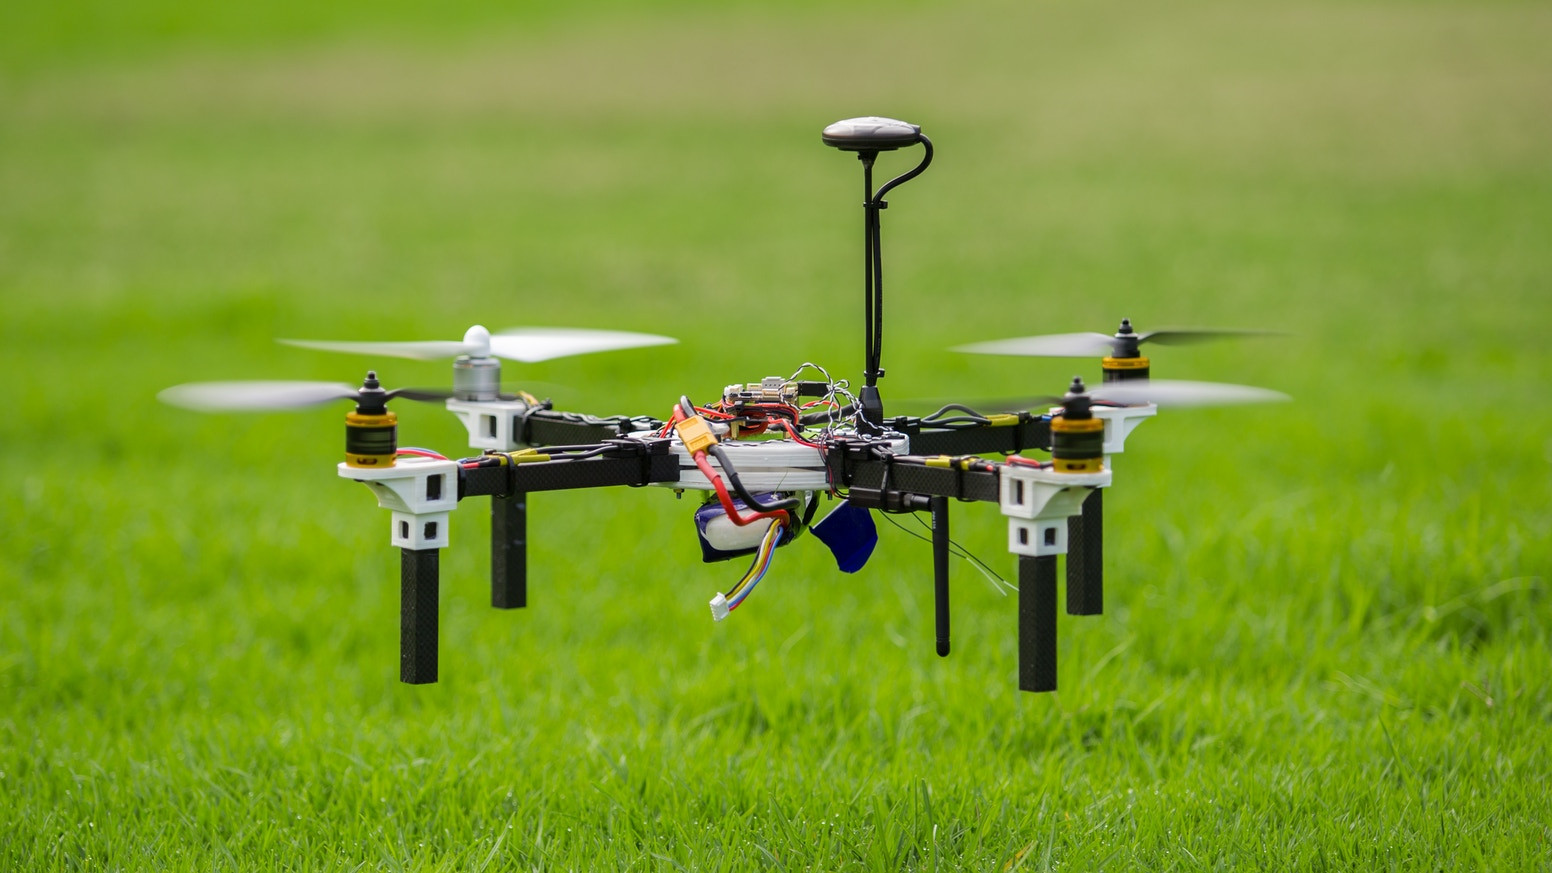 Drone DIY Kit  H4WK DIY Drone Kit Build & Fly Your Own Quadcopter by